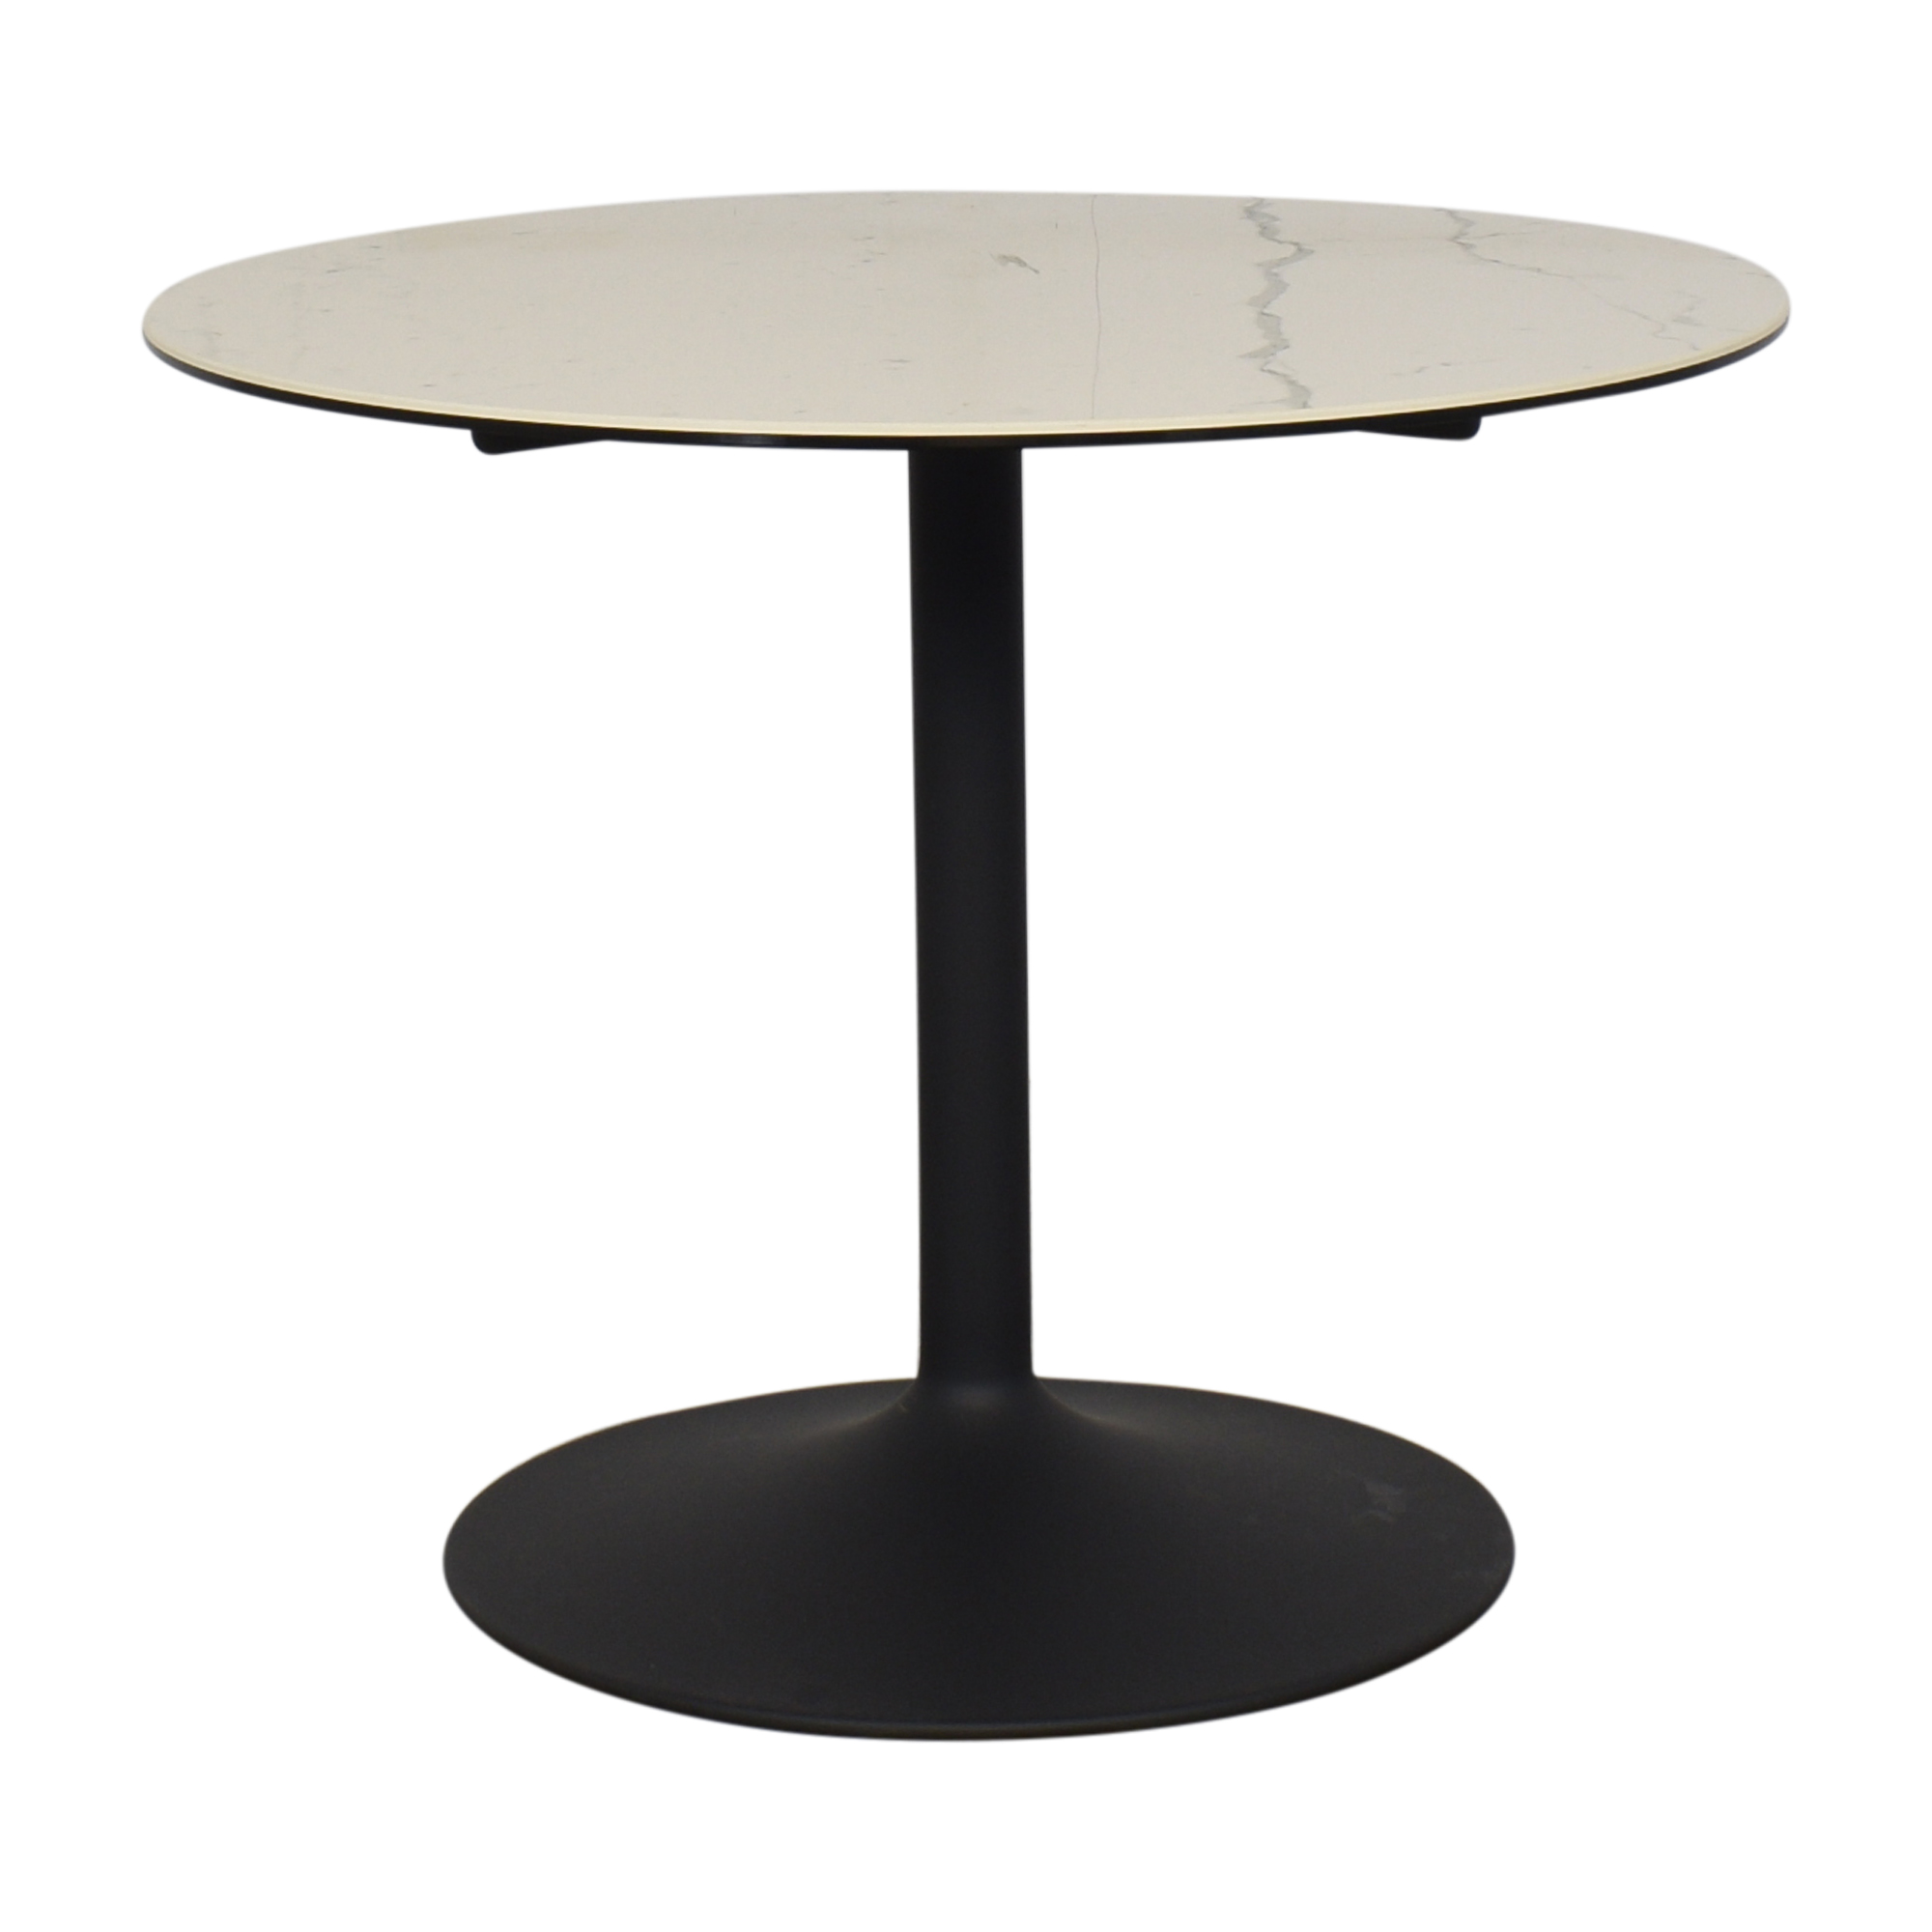 Room & Board Aria Round Table / Tables